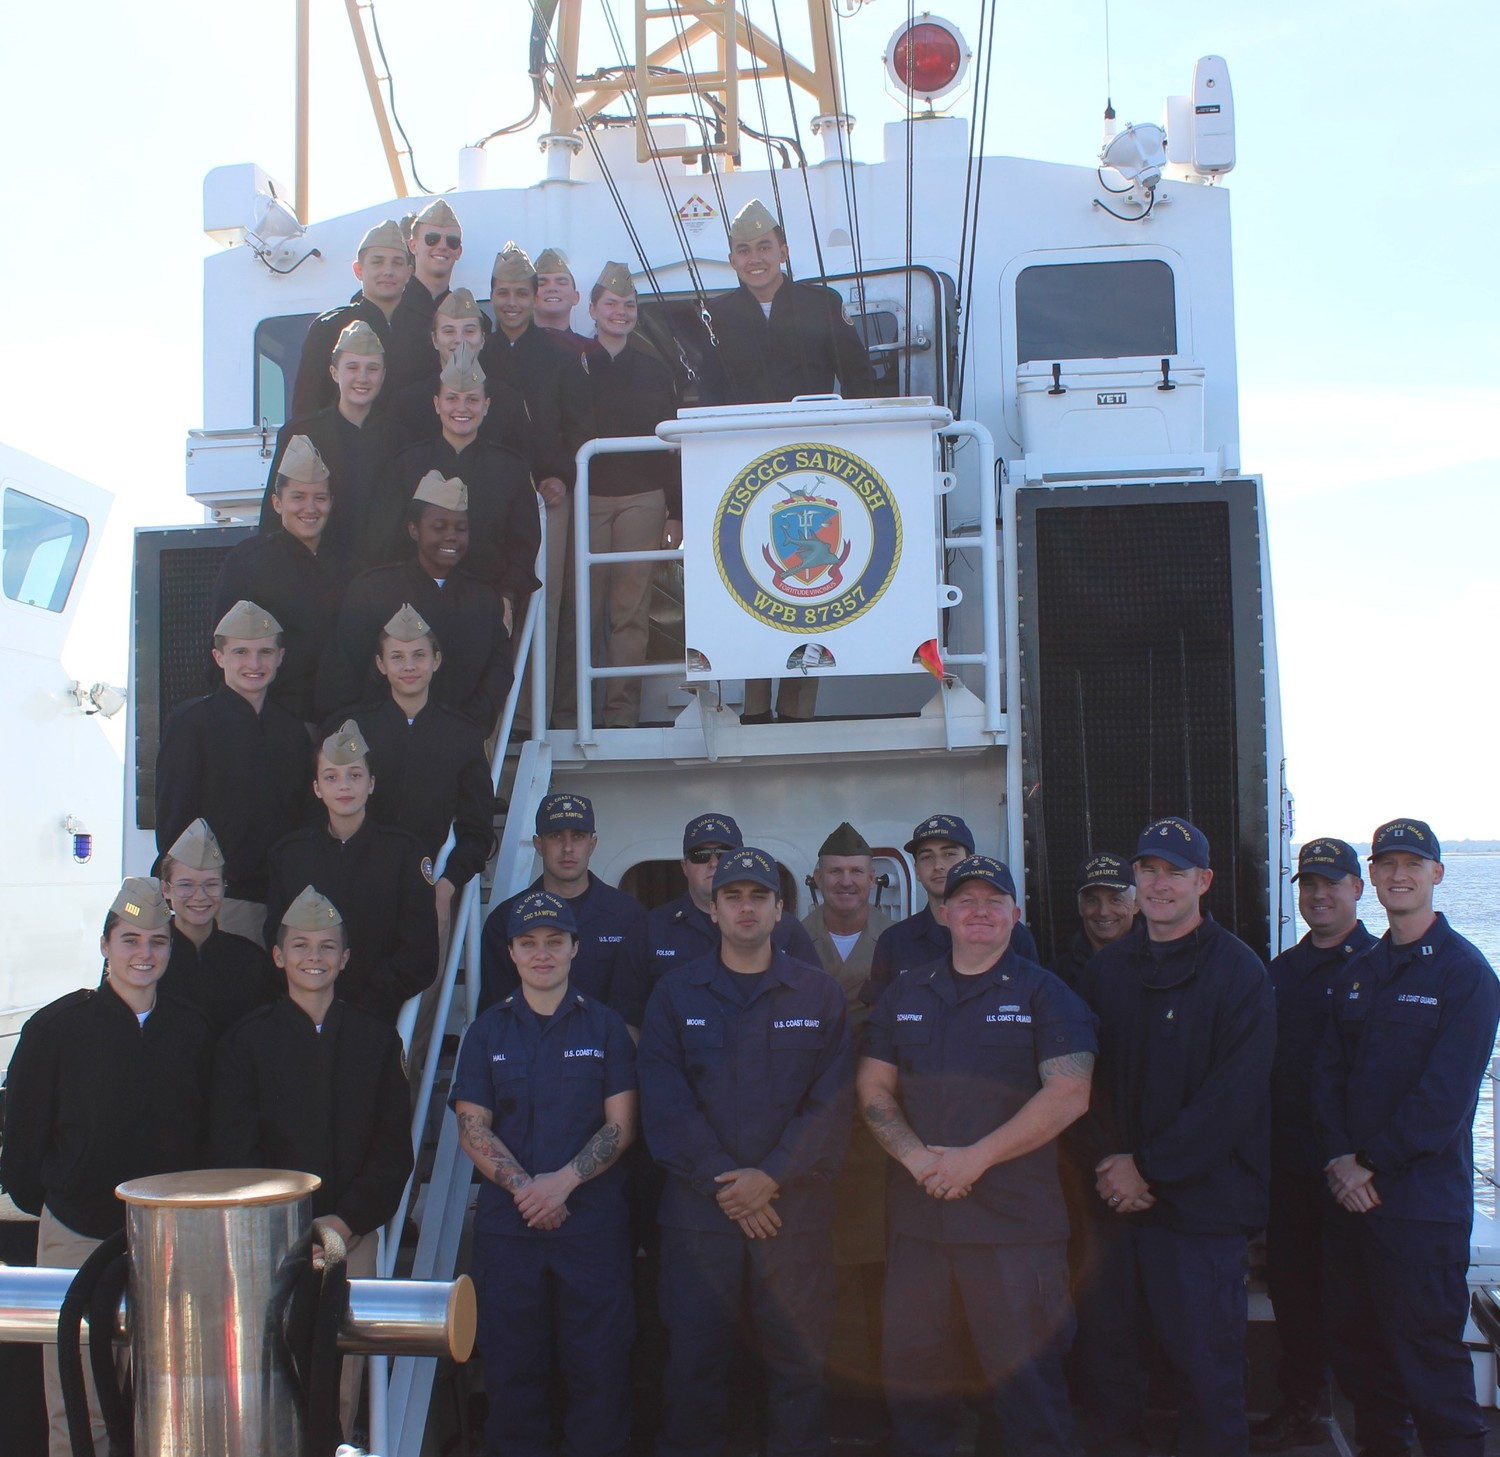 Nease NJROTC cadets sail with the crew of the Coast Guard Cutter Sawfish on Dec. 6.